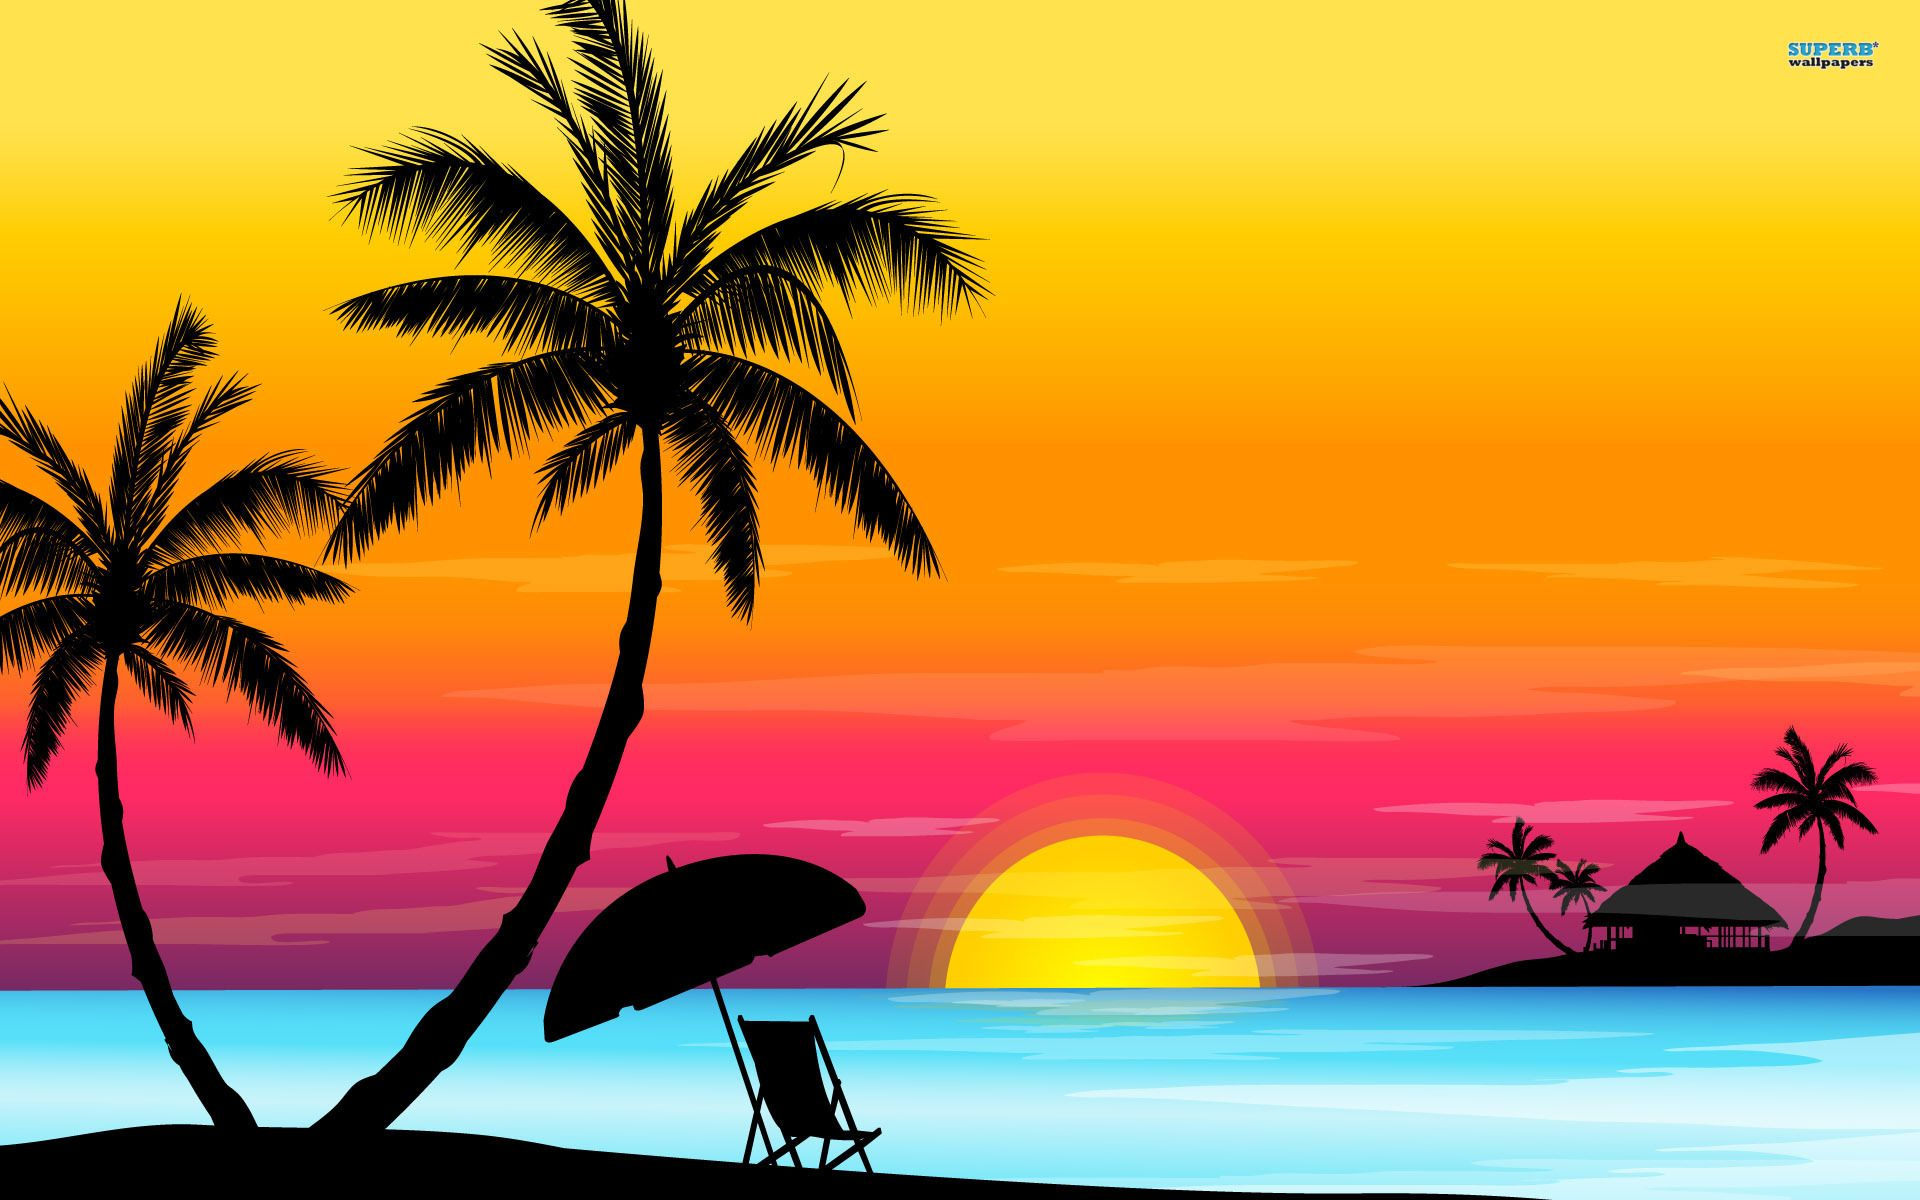 sunset beach background clipart gracy pinterest background rh pinterest com clip art sunset images clipart sunset border